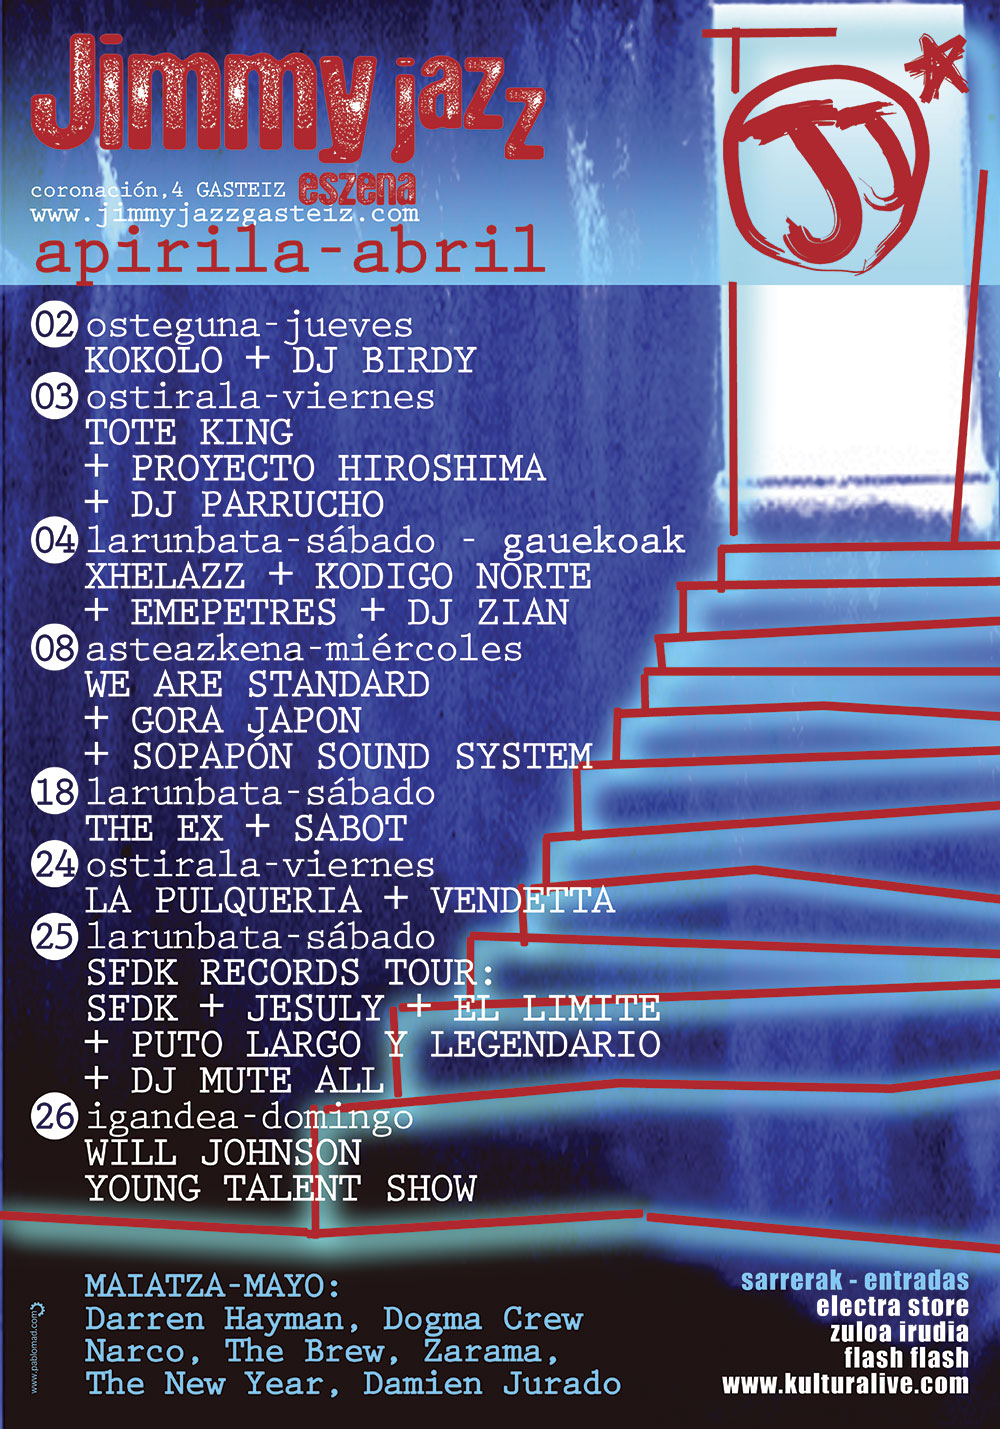 03_cartel_abril_09 jimmy jazz pablomad